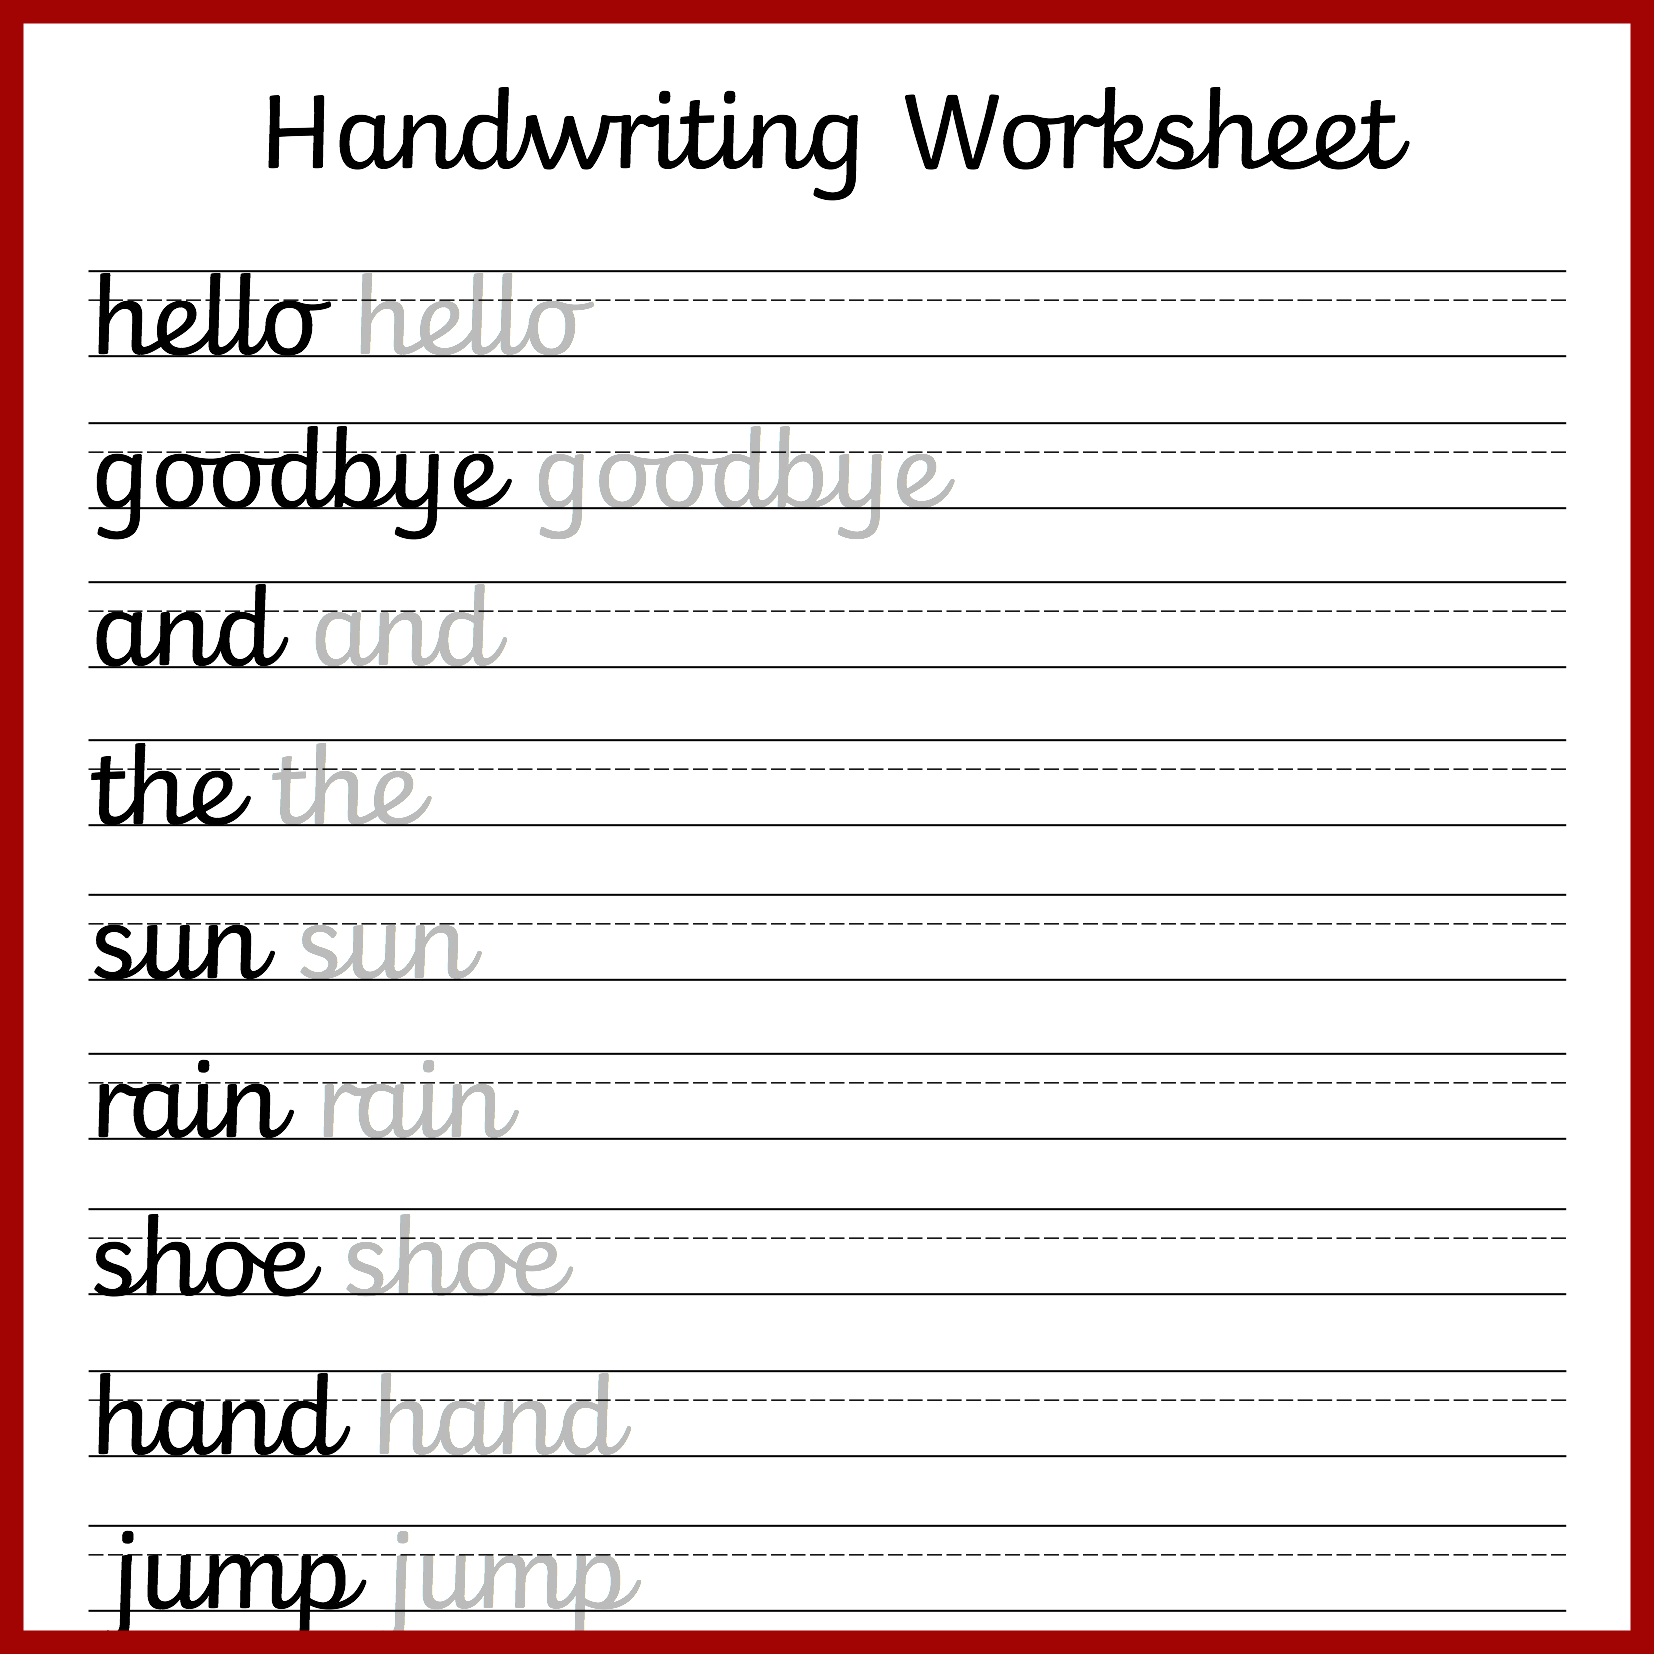 worksheet Handwritting Worksheets penmanship worksheet daway dabrowa co worksheet